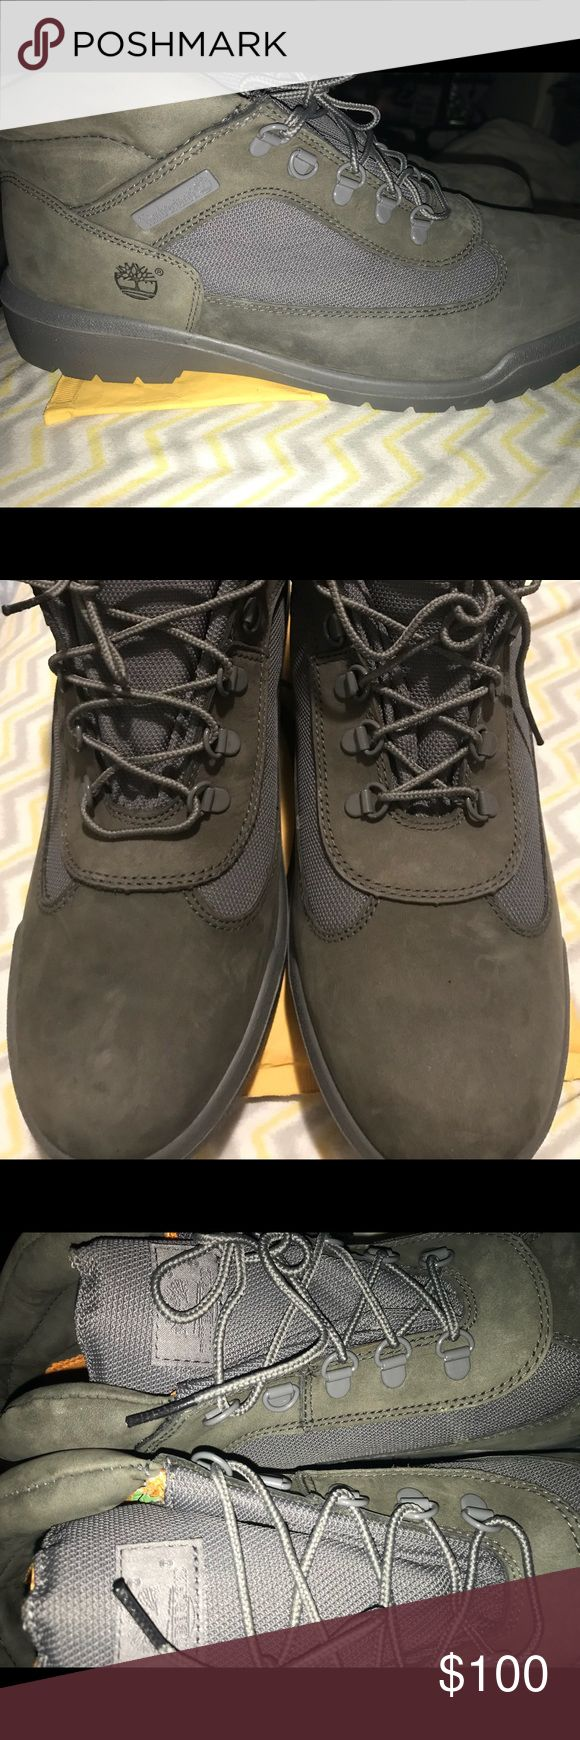 Men's Timberland Field Boots- Size 14 Men's Timberland Field boots. Gray colored. Brand new, never worn. Size 14M men's. Timberland Shoes Boots